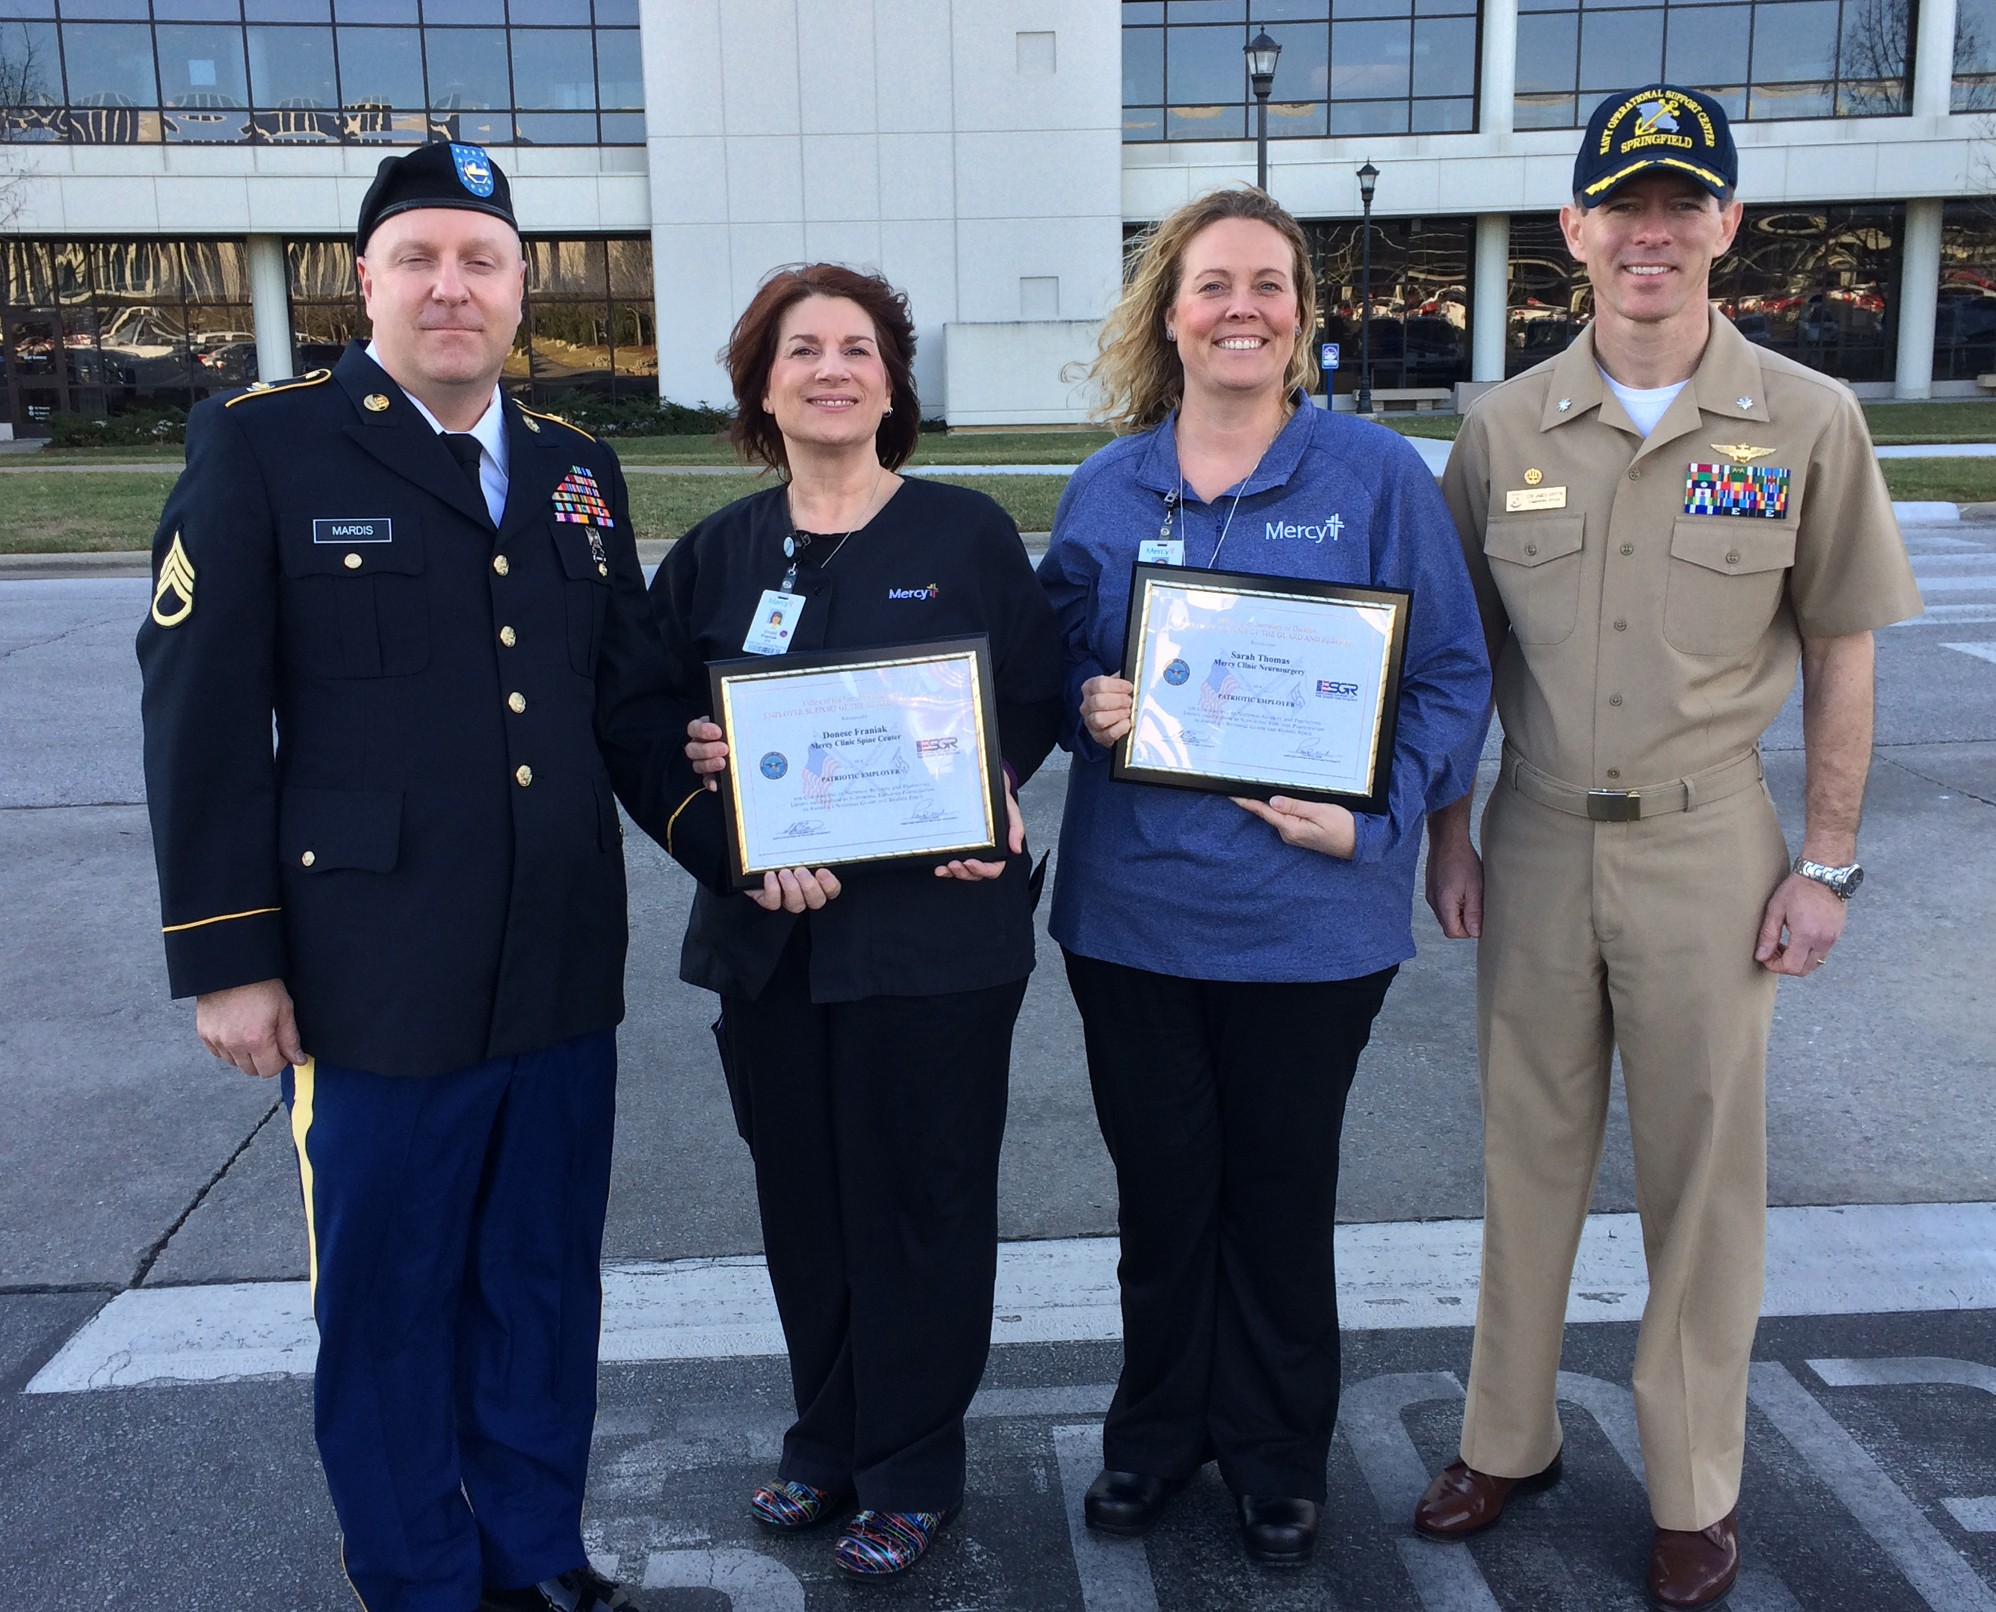 Staff Sgt. David Mardis, a Mercy medical assistant, nominated his supervisors, Donni Franiak and Sarah Thomas, for the Patriot Award. Cmdr. James Griffin, of Springfield's Navy Operational Support Center, made the official presentation.